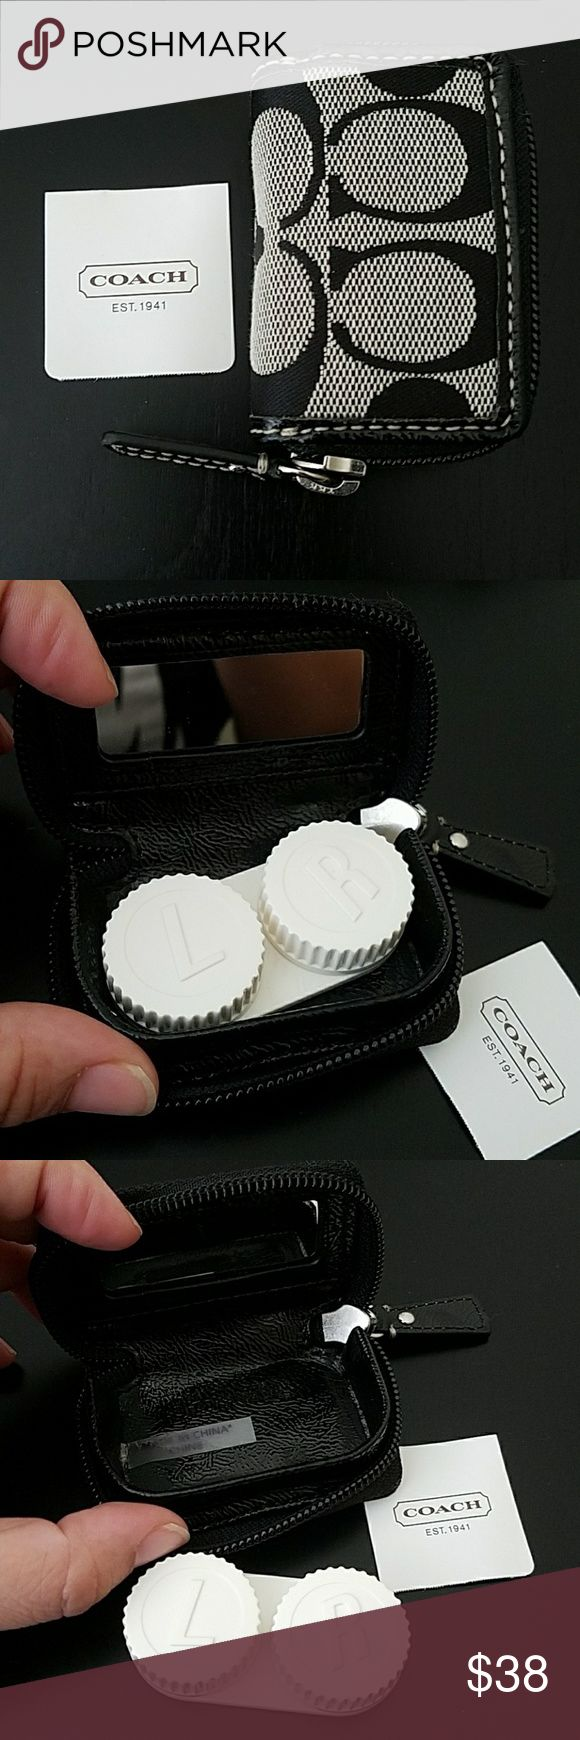 NWT Coach Signature black white contact lens case Brand new Coach contact lens case. Never used. Coach Accessories